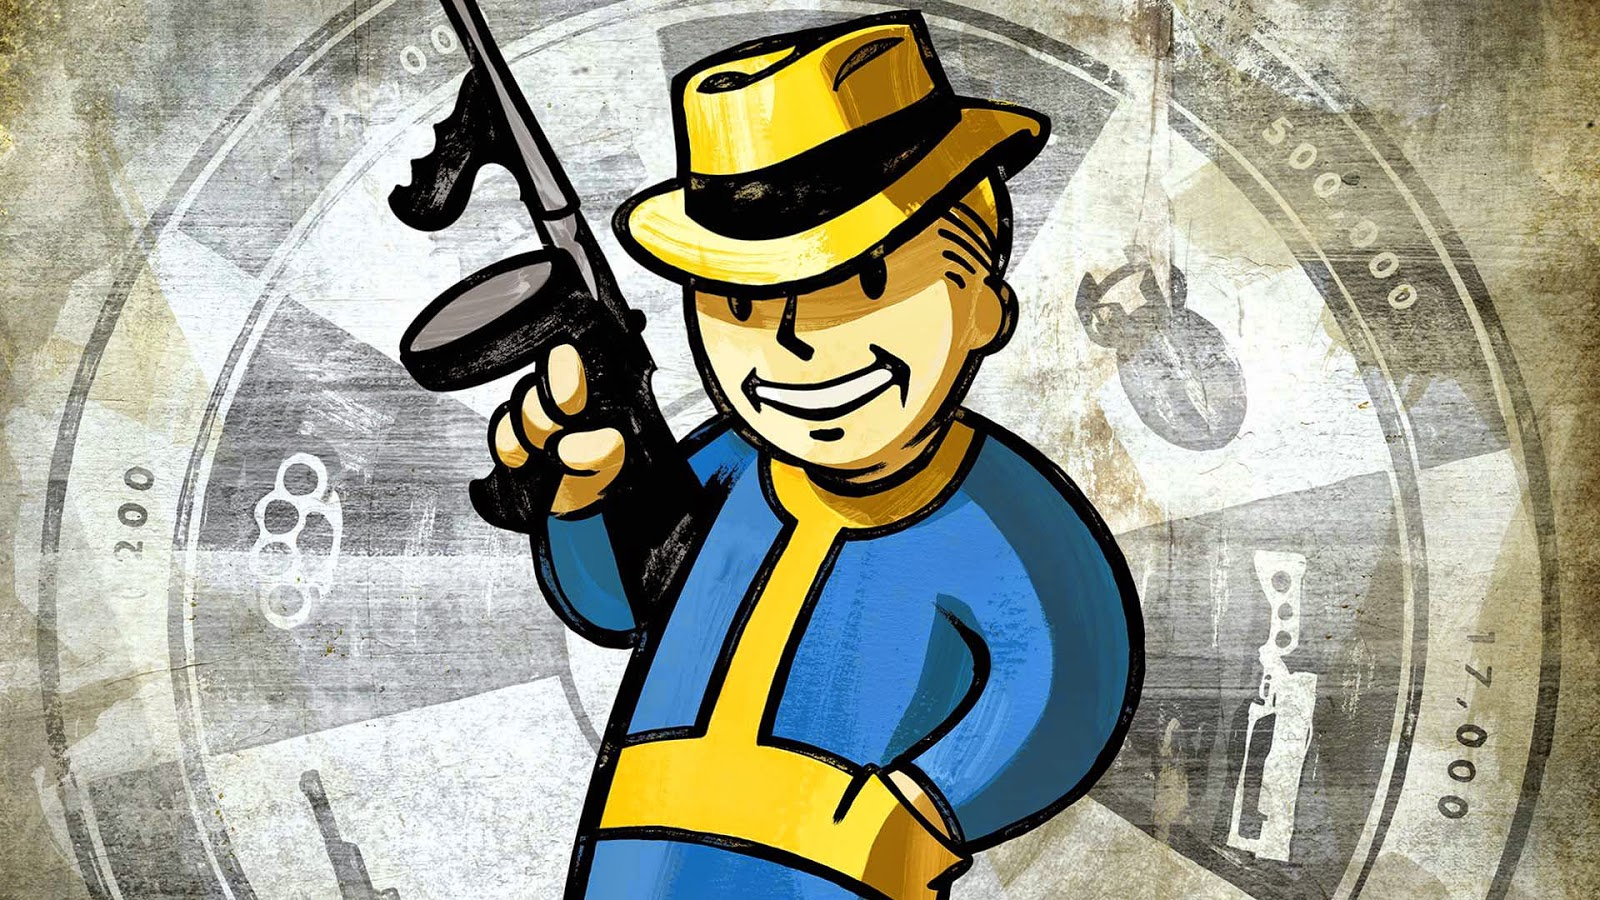 Издательство Bethesda готовит анонсы Fallout: Shadow of Boston и Fallout: Ultimate Collection